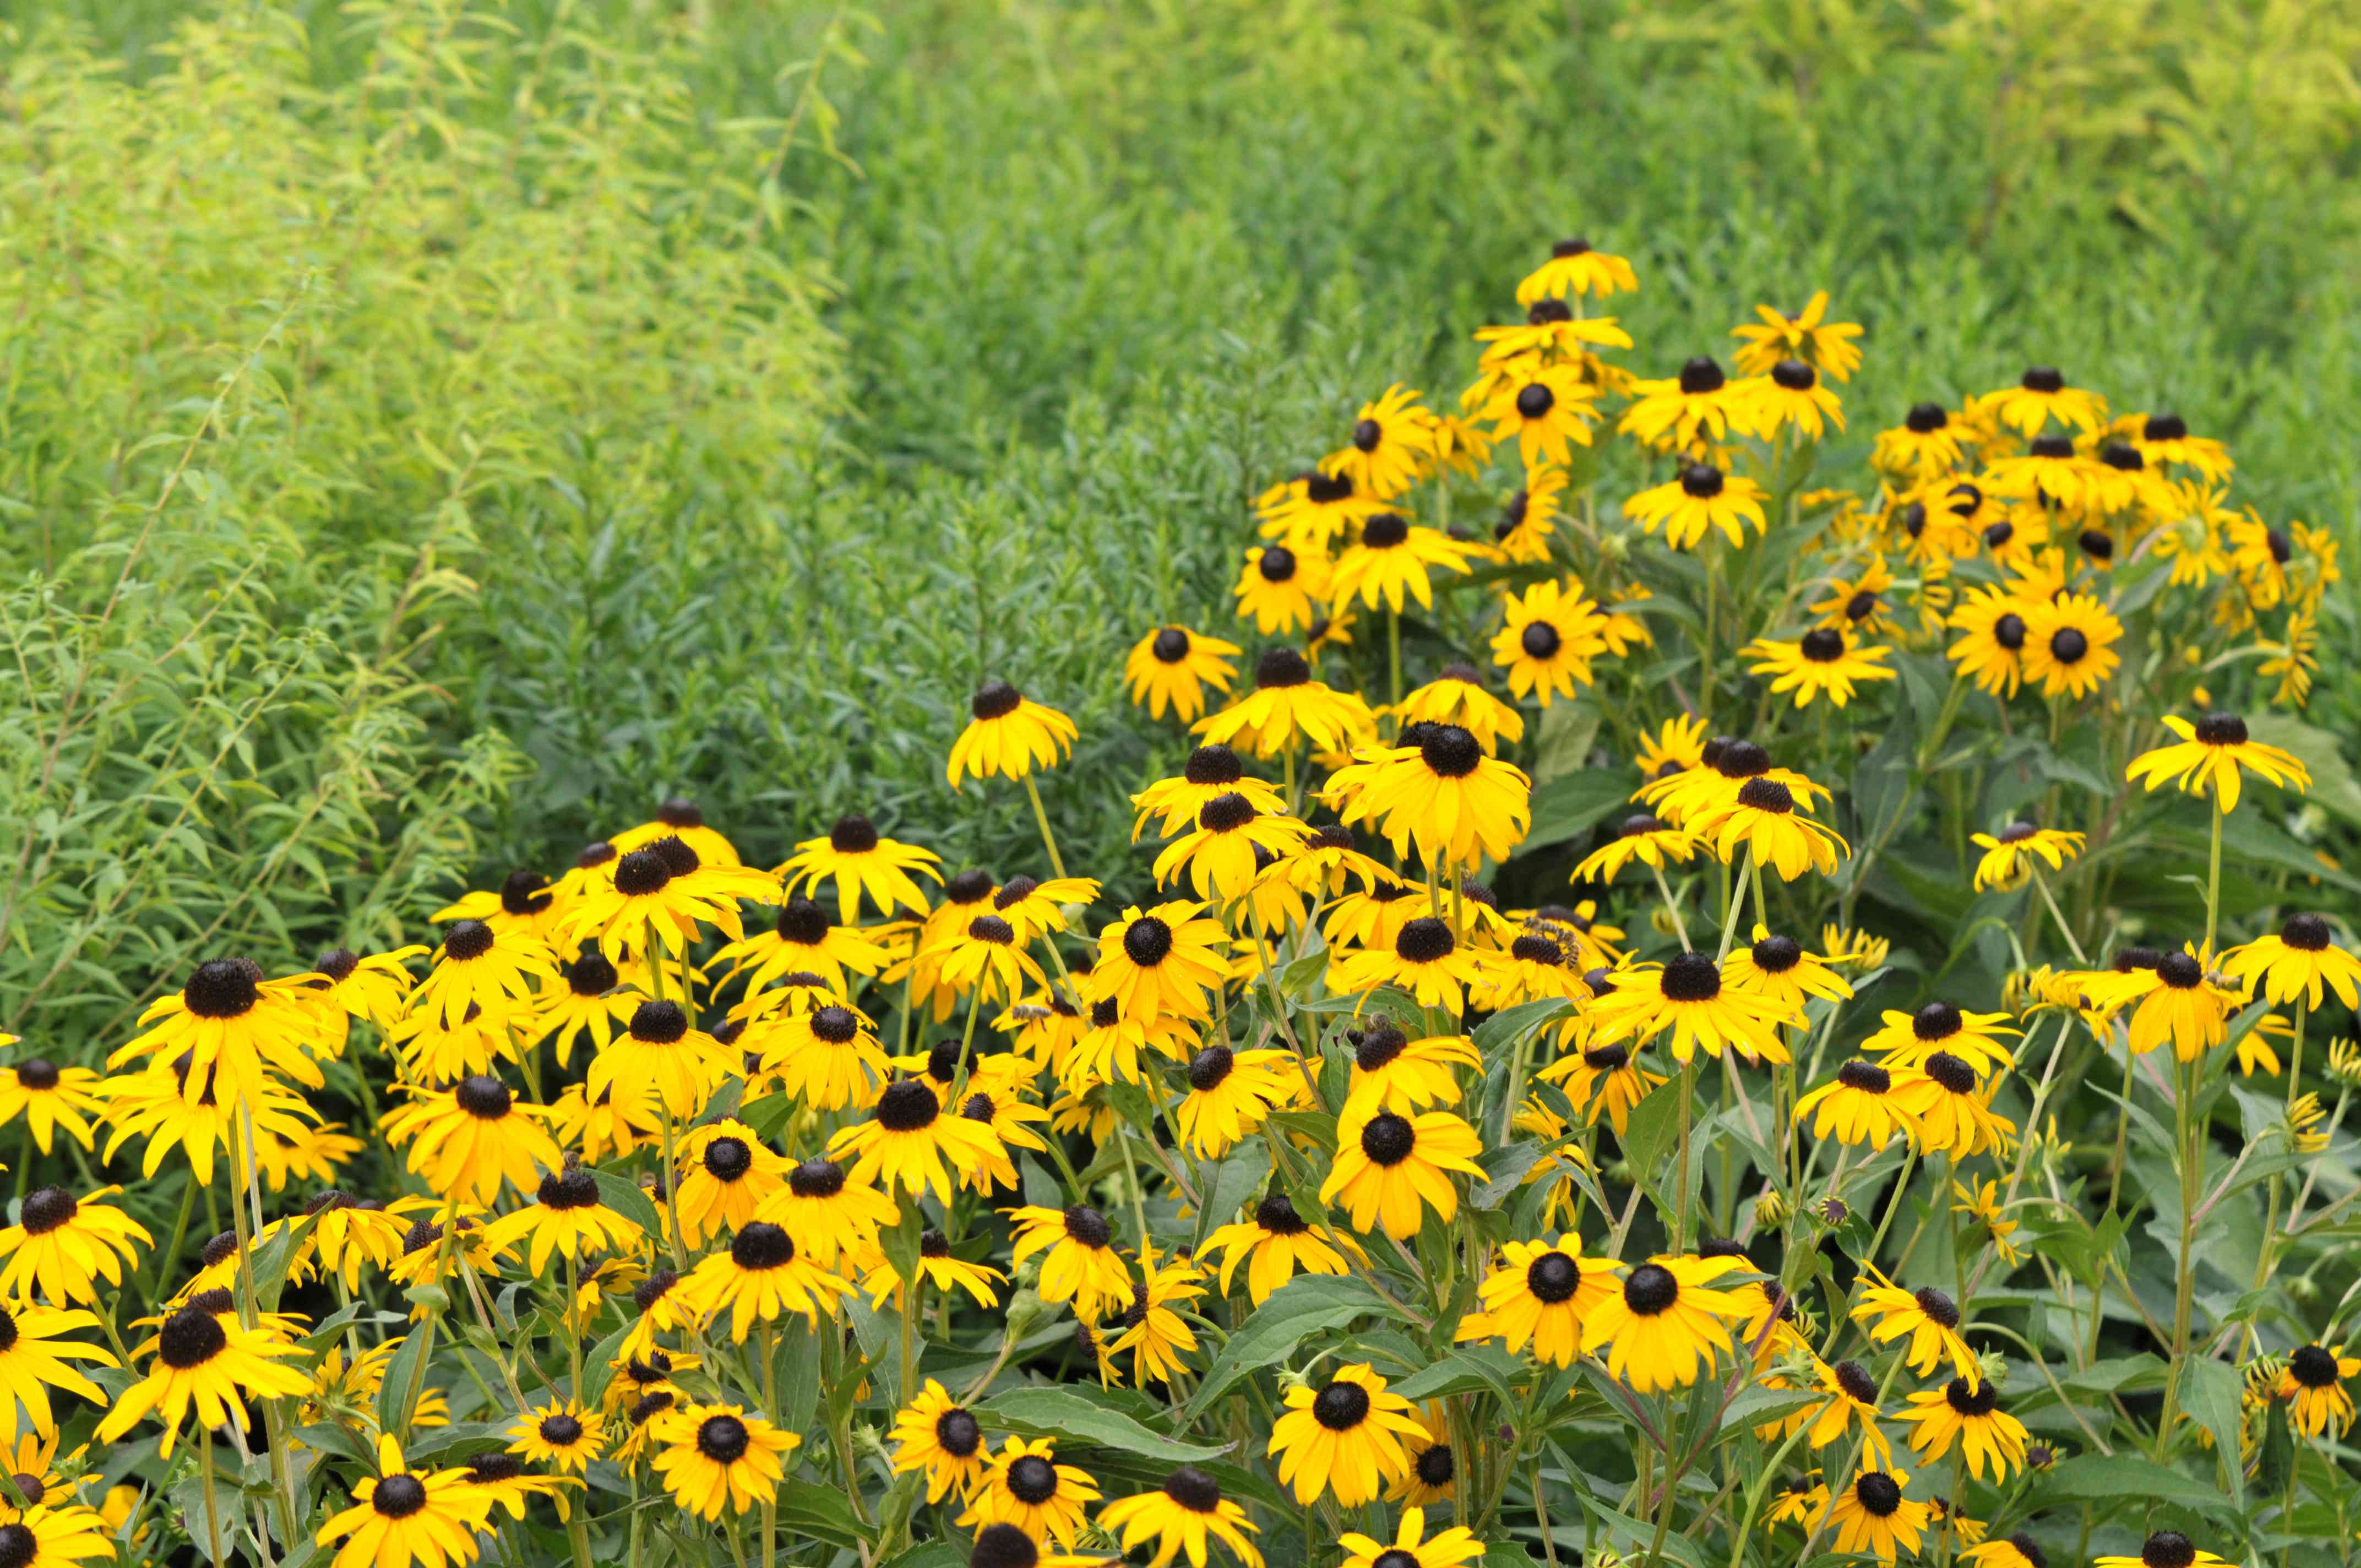 'Goldsturm' black-eyed susan flowers with yellow radiating petals next to tall grass